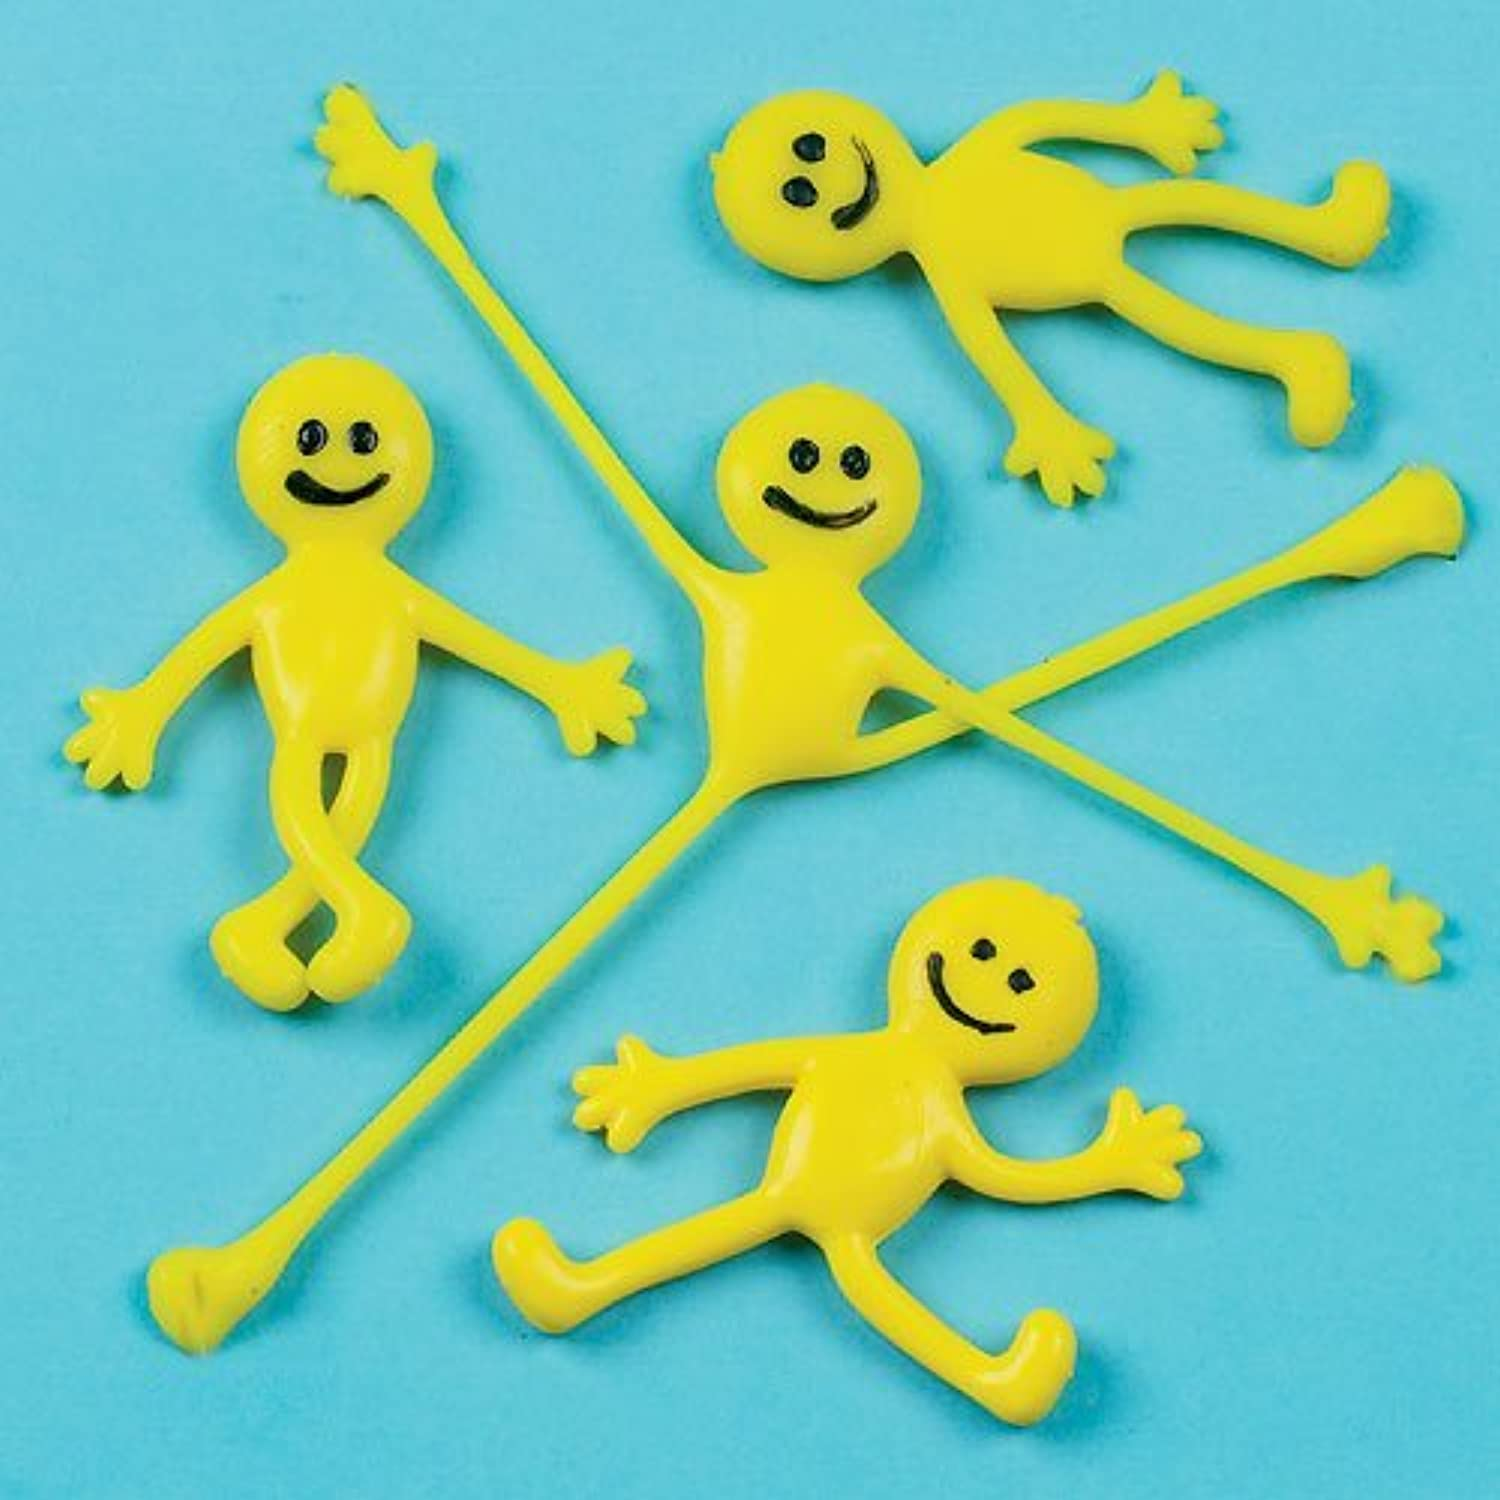 Smiley Stretchy Men (Pack of 6) by Baker Ross